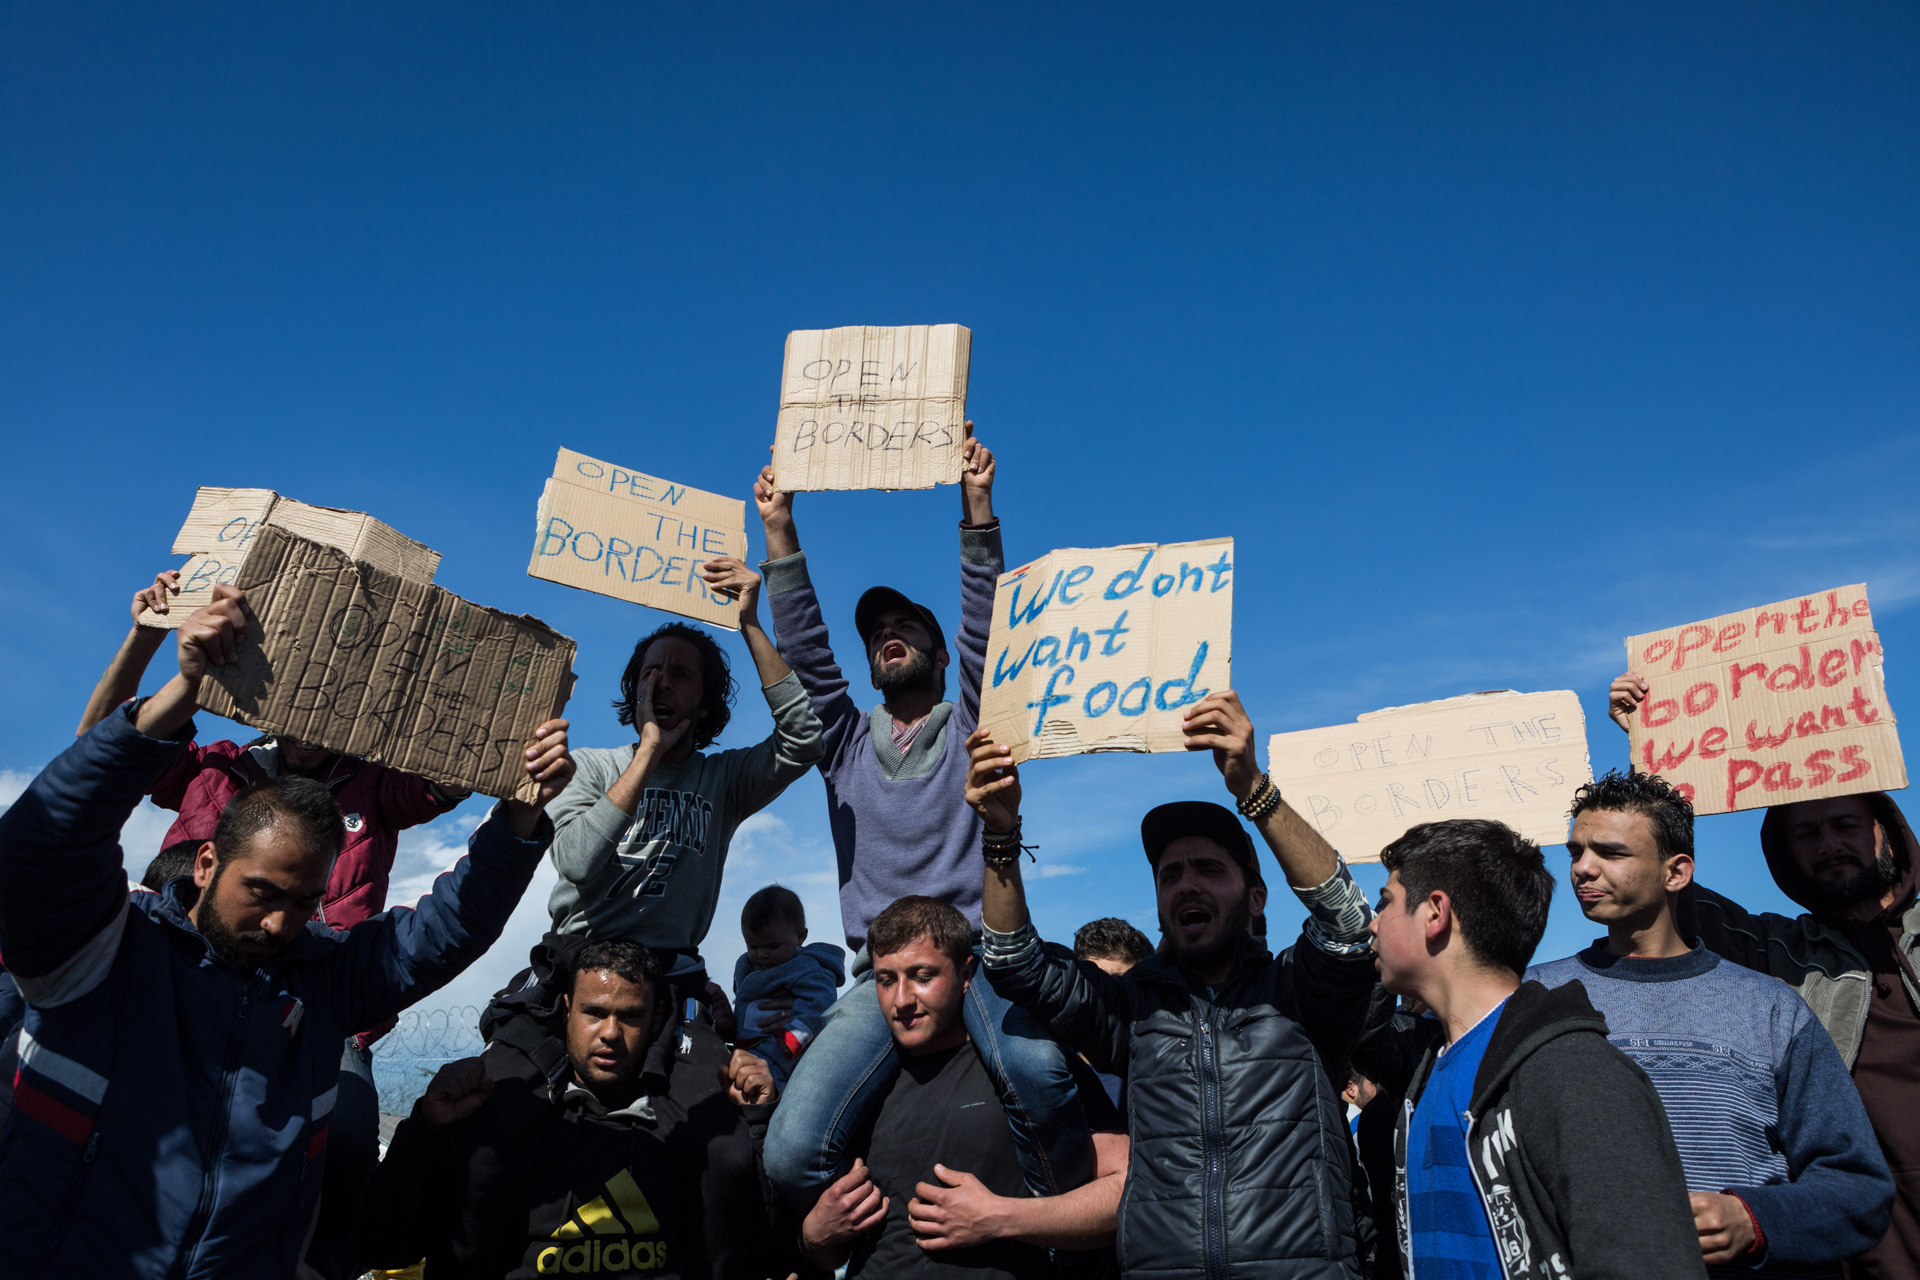 After a week in the camp, protests start to emerge. Basem is always part of the demonstrations in the camp. He holds a sign on the far right.